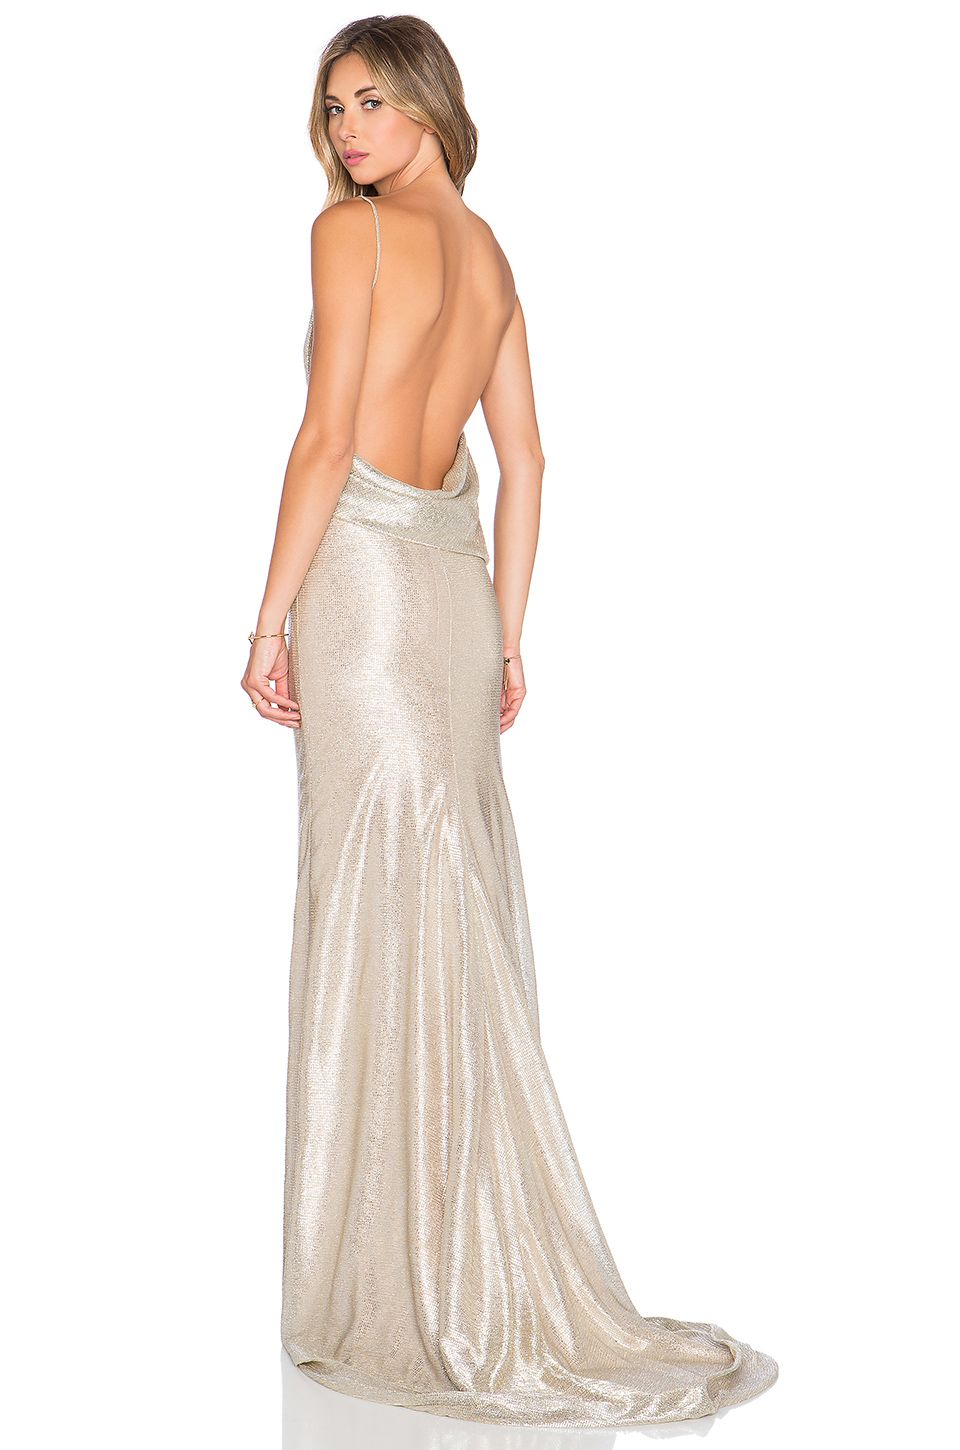 Gemeli Power Ms Jasper Gown in Silver | Evening Dresses | Pinterest ...